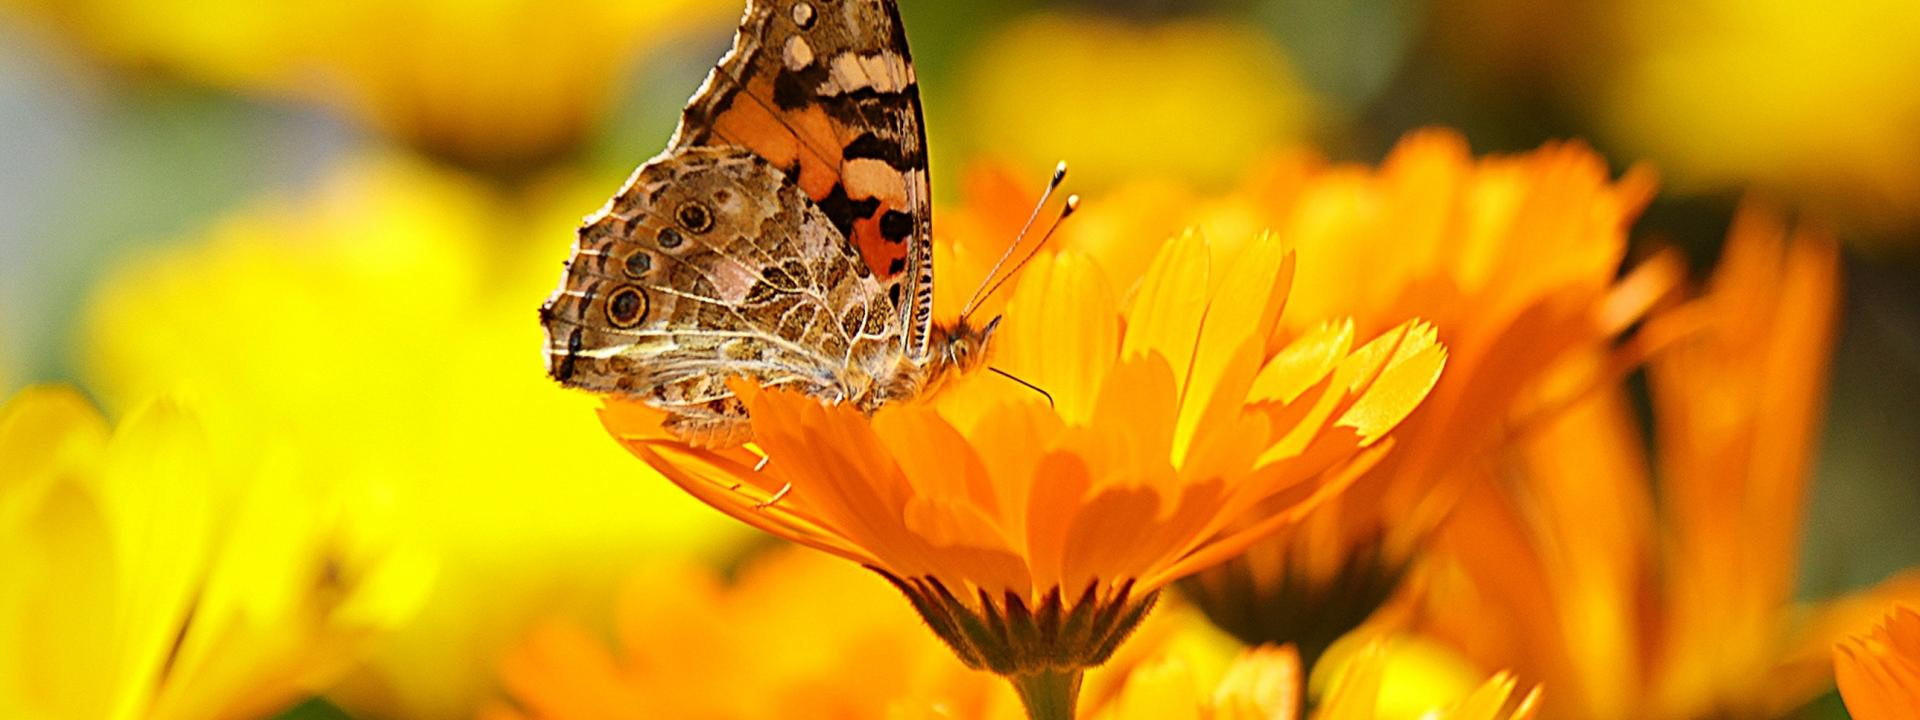 A butterfly perched on a yellow flower in a field of golden yellow flowers